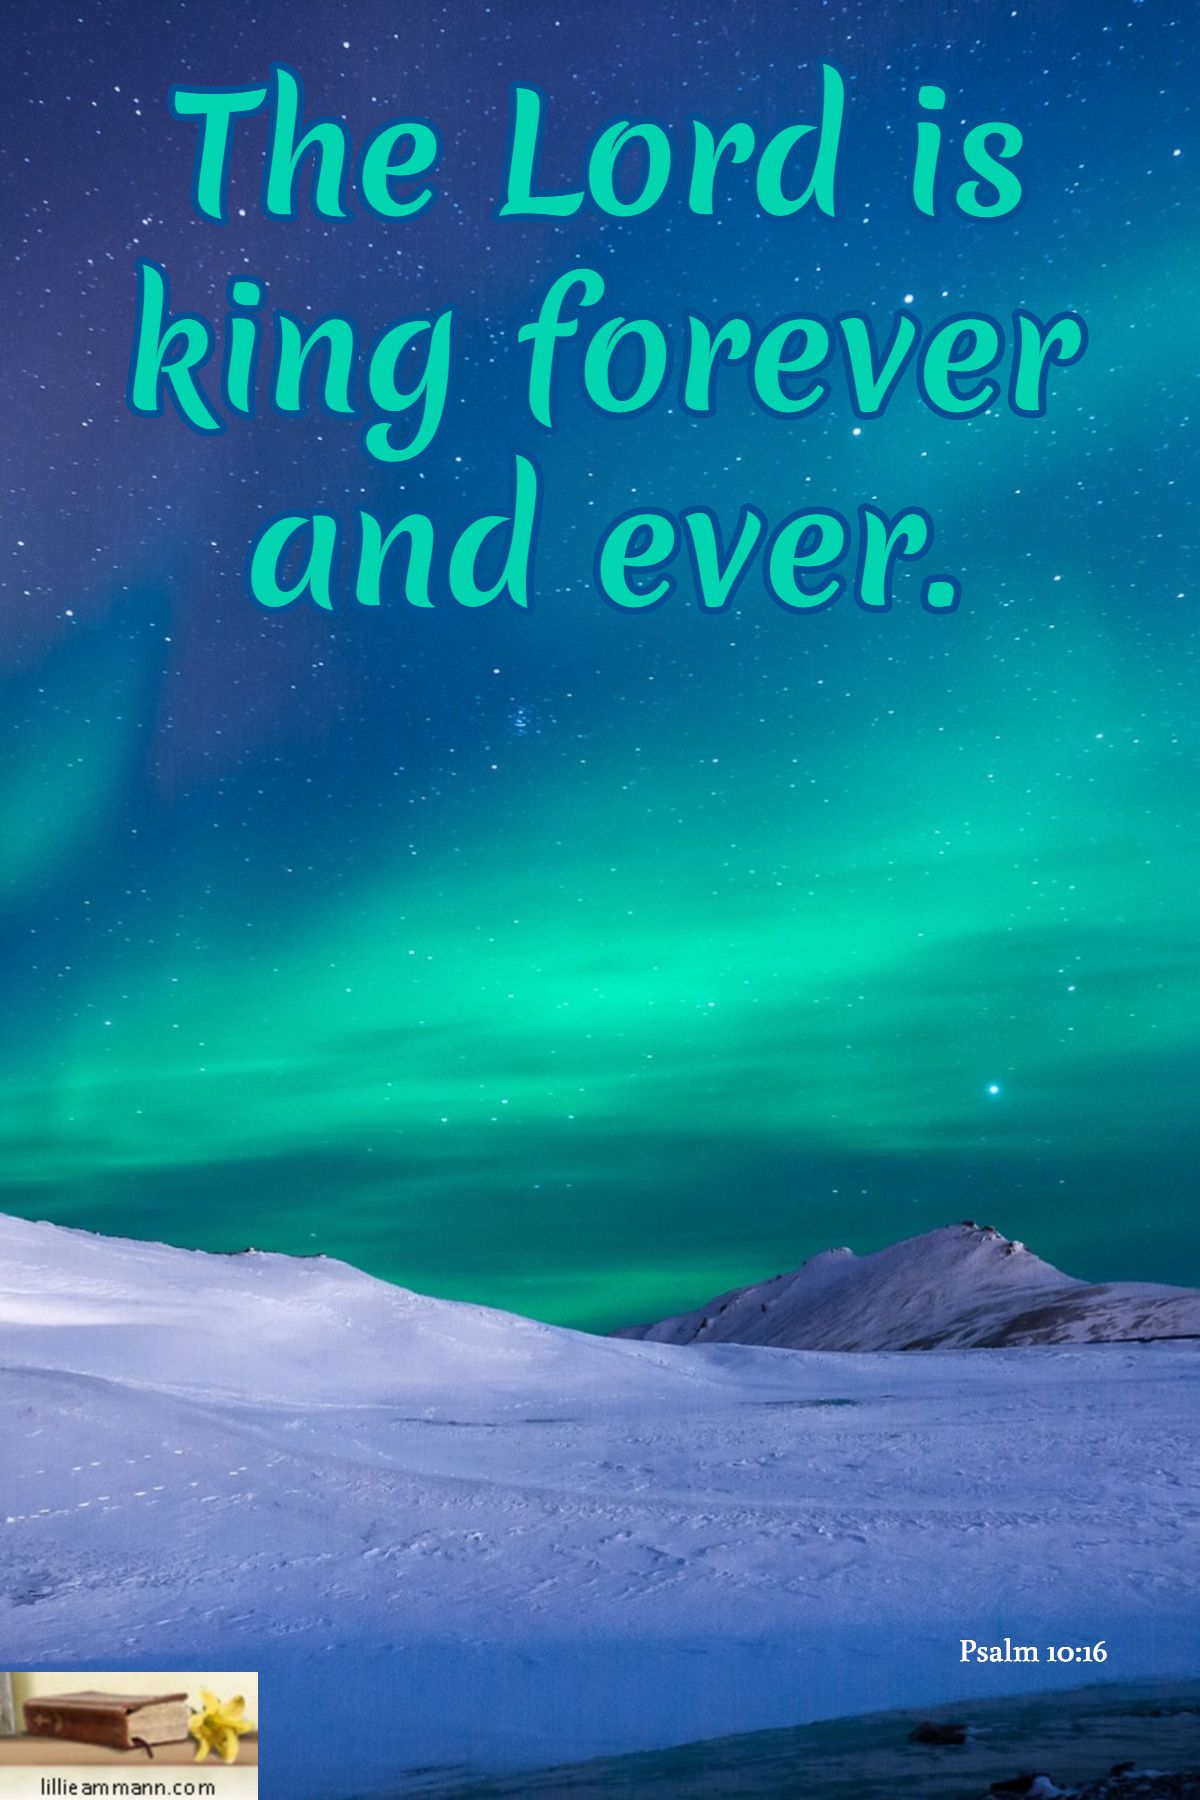 Psalm 1016 / The Lord is king forever and ever. Psalm